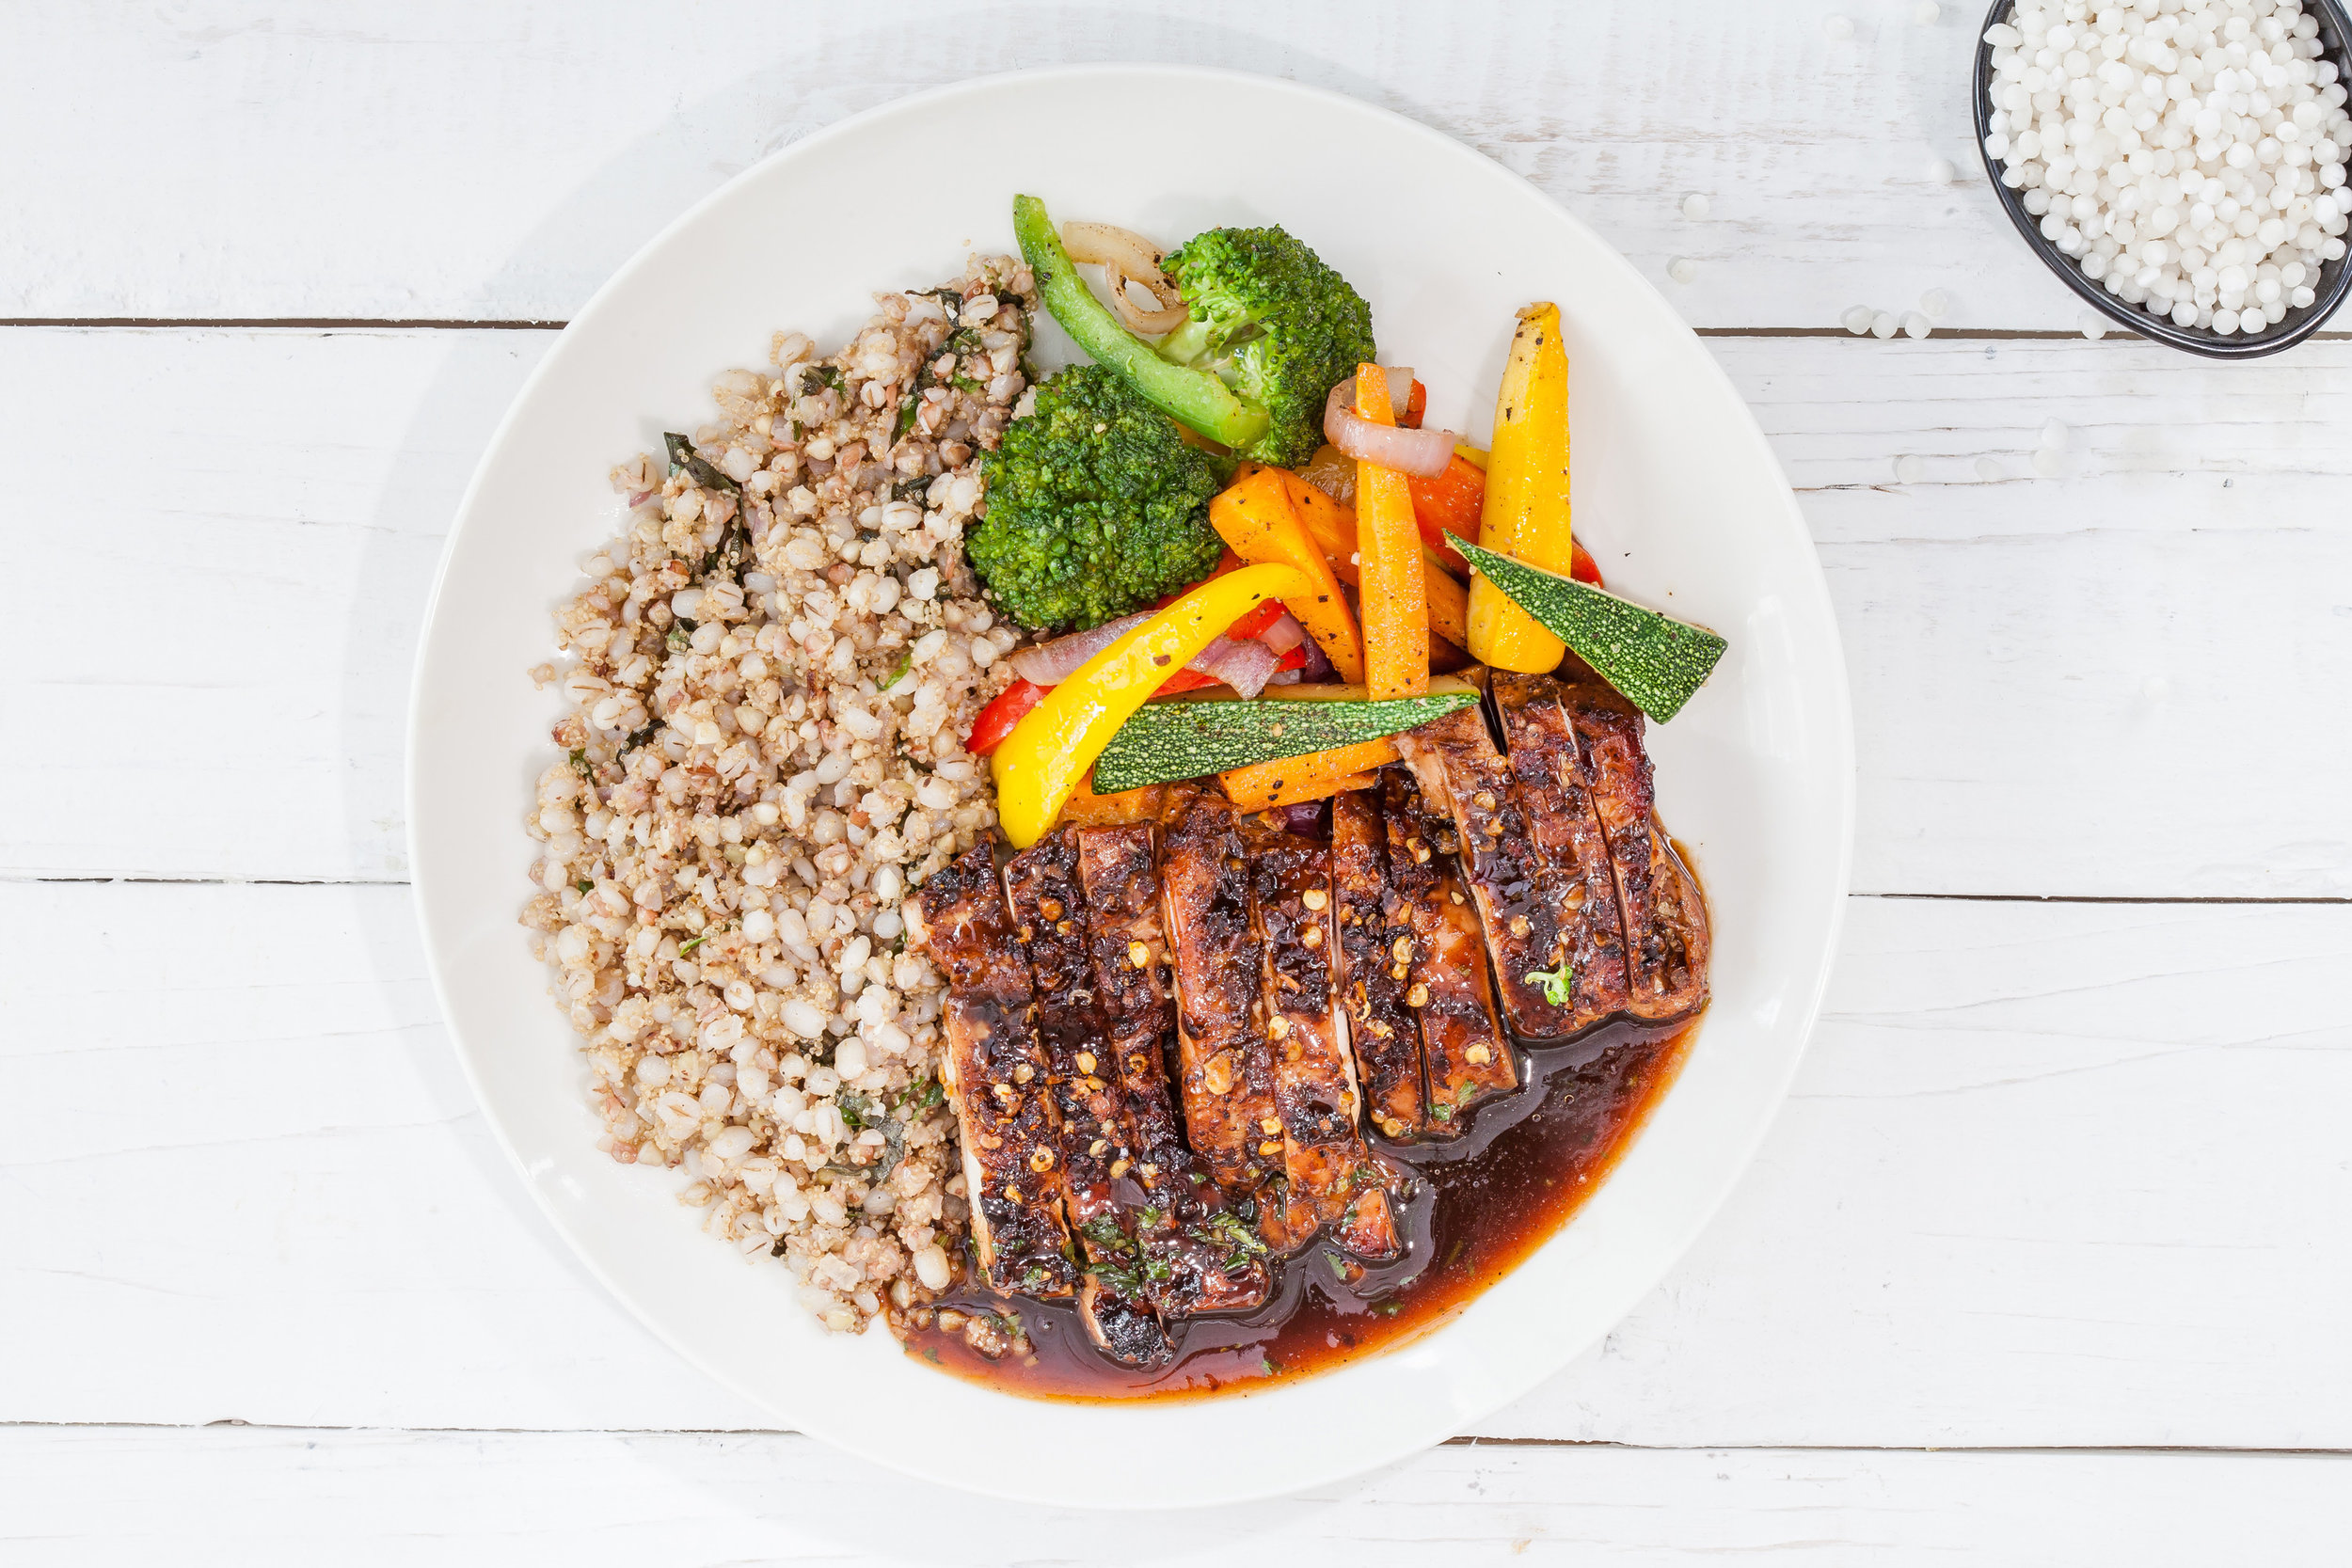 Today's Special - Low Carb BBQ Chicken Amaranth SteakTry our brand new Amaranth dish to experience a protein packed delicious meal. A juicy chicken steak that comes alive with Amaranth. Feast on this barbequed chicken steak served with butter sauteed veggies and a portion of cilantro Amaranth barley mix. With a side of smoked pepper sauce, this dish sums up proteins, rich fiber, and deliciousness. Order Now!